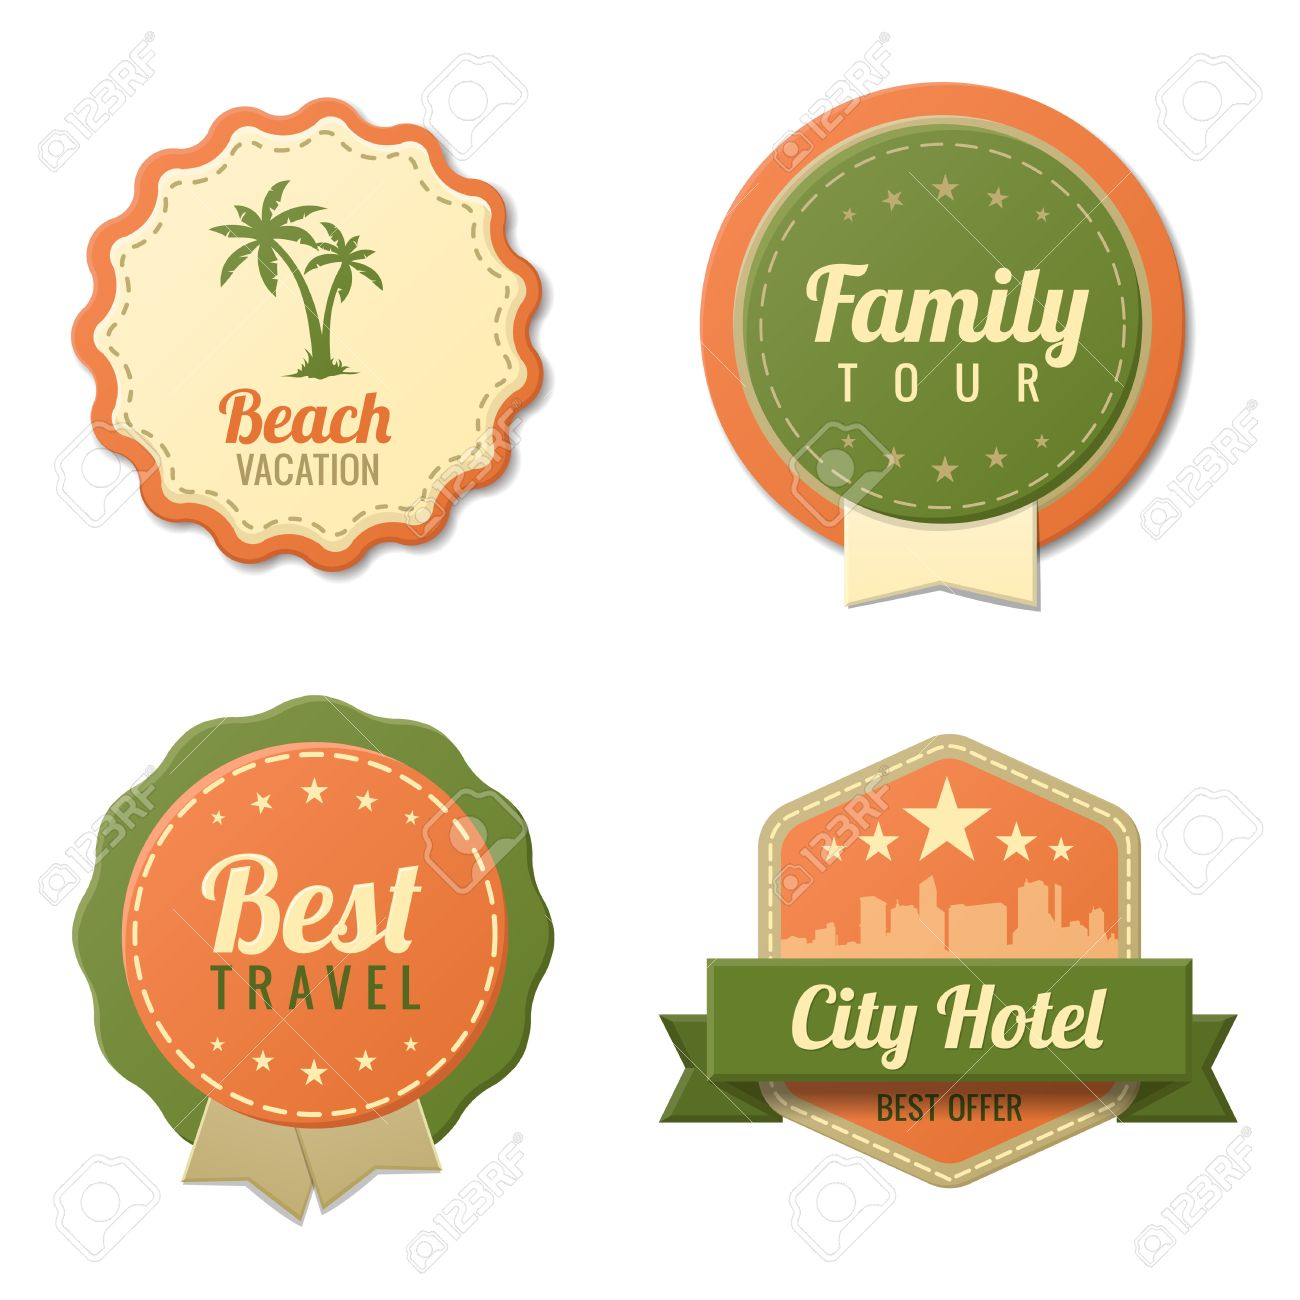 Travel vintage labels logo template collection tourism stickers